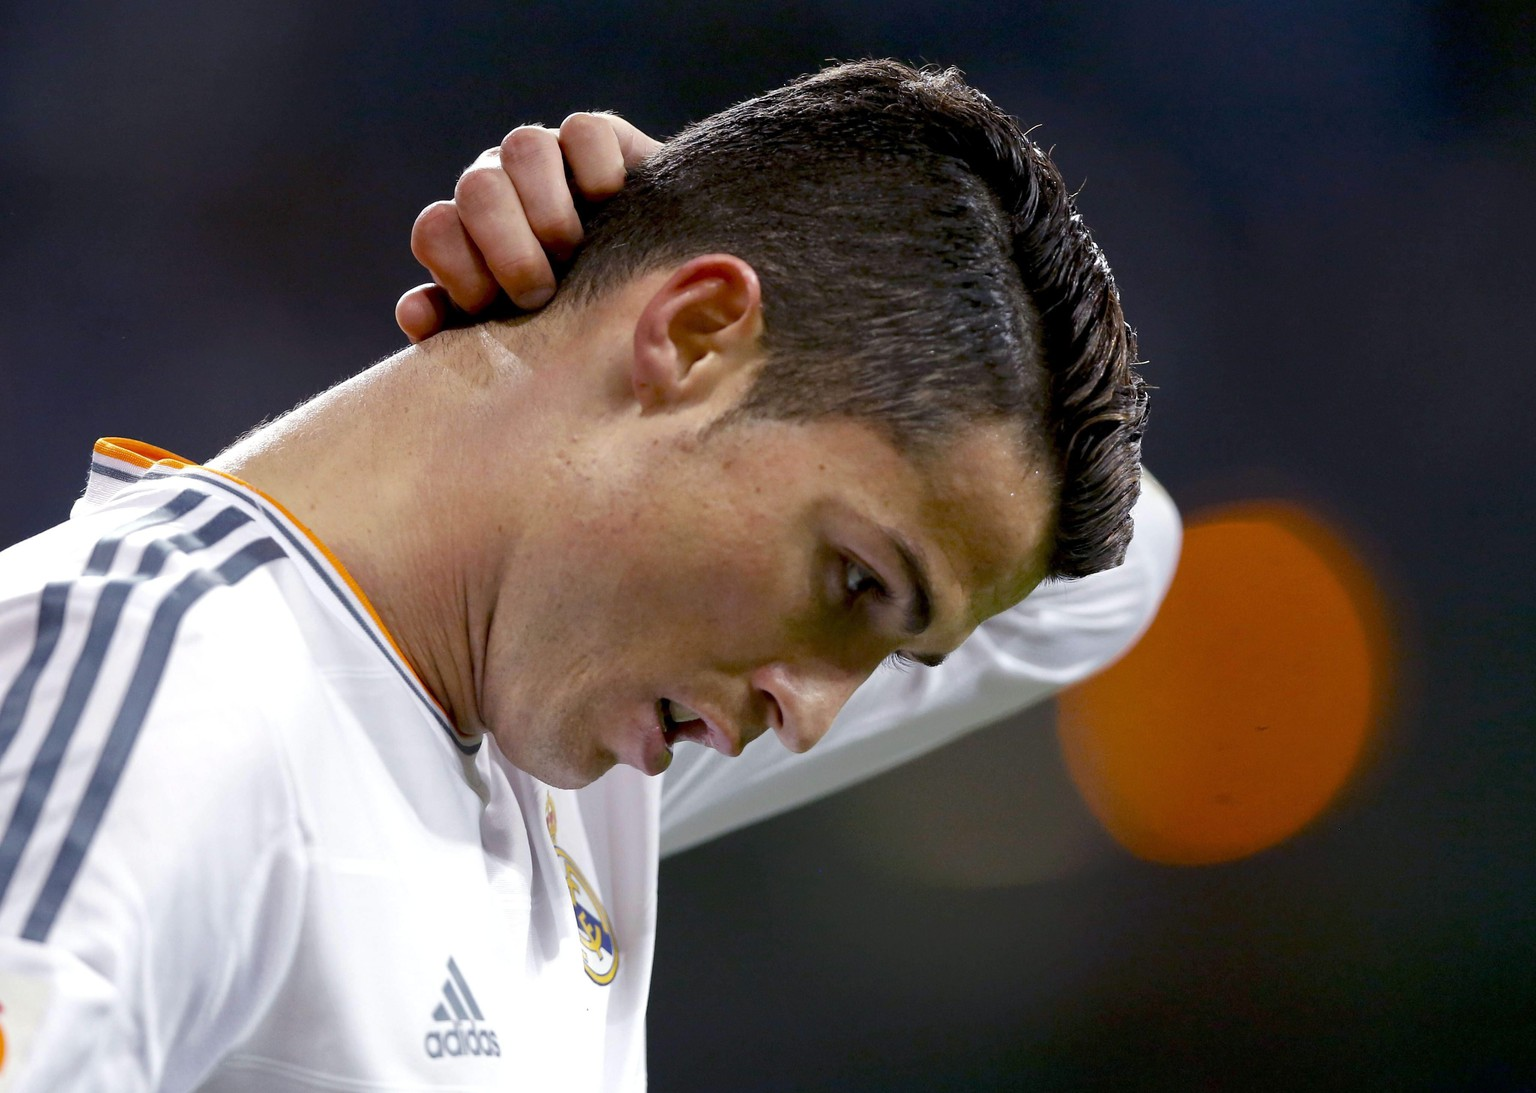 Real Madrid´s Portuguese forward Cristiano Ronaldo reacts during his Spanish King's Cup quarterfinals second leg soccer match against RCD Espanyol played at Santiago Bernabeu stadium in Madrid, Spain, 28 January 2014.  EPA/Juanjo Martin